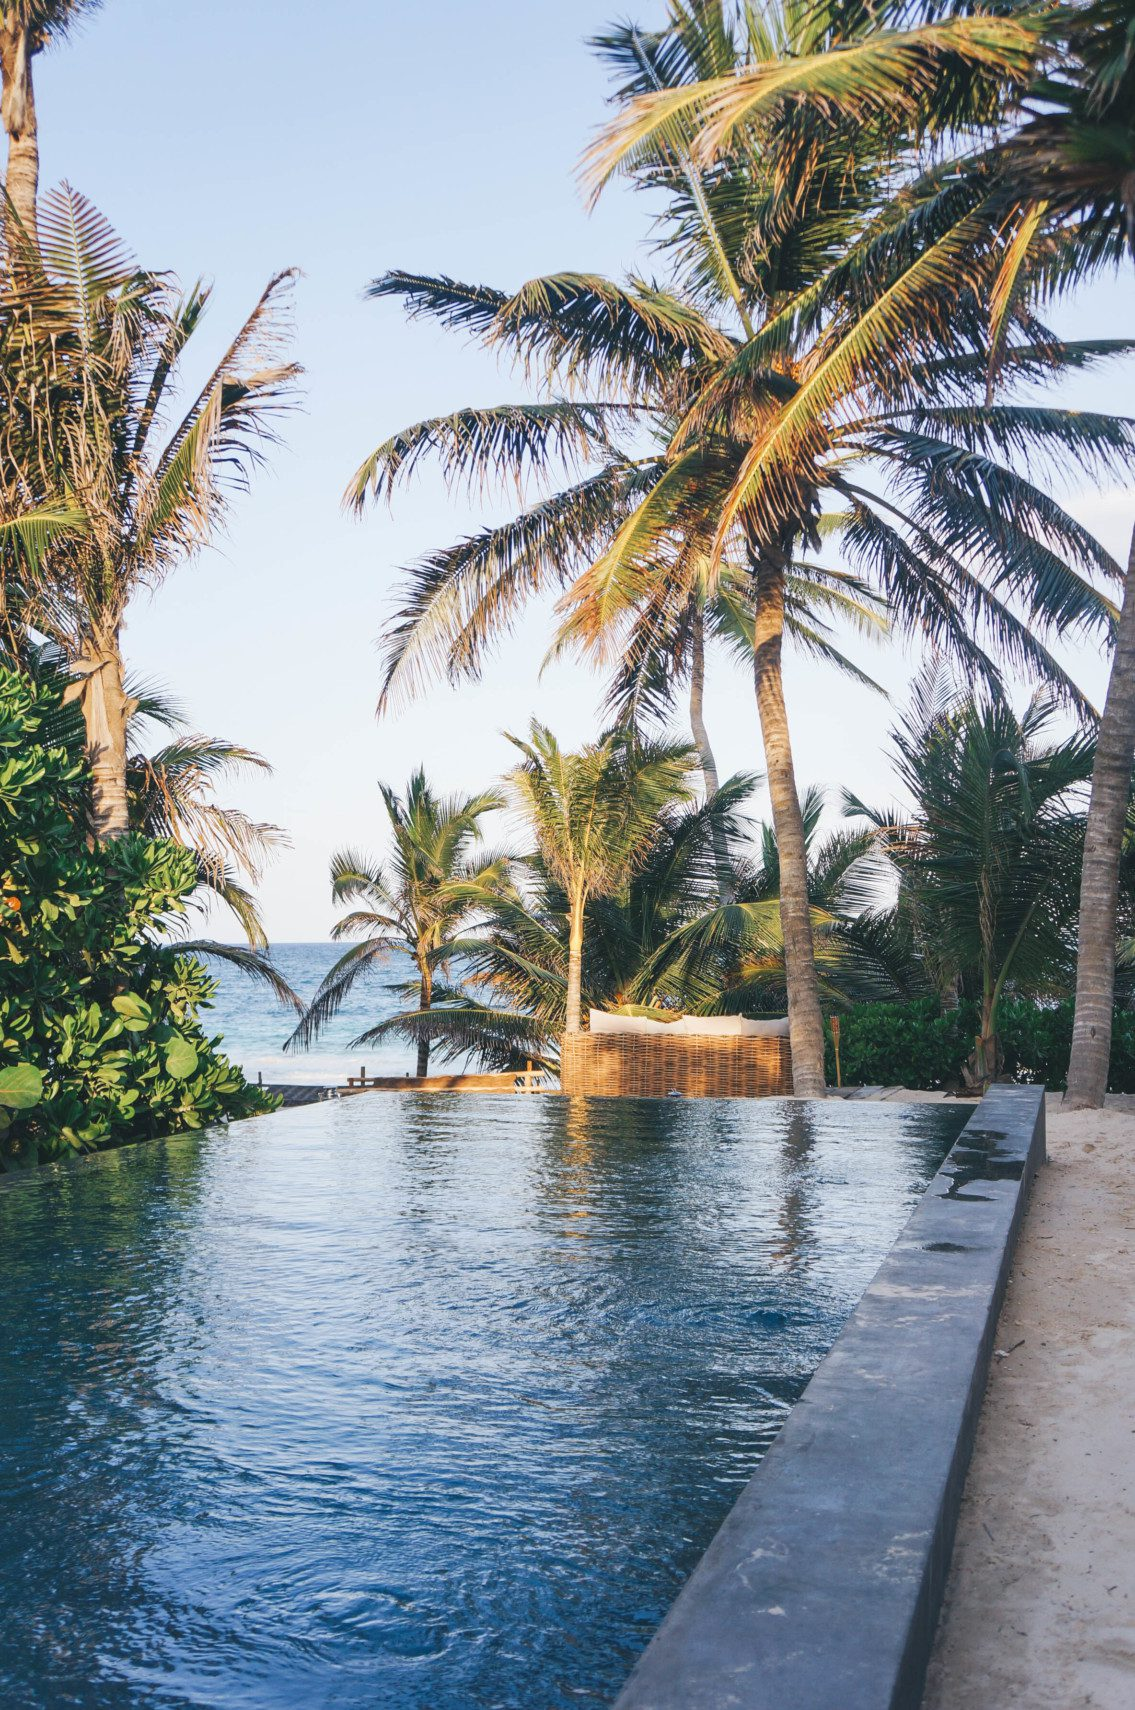 Looking for the best beach hotel in Tulum? Look no further than Be Tulum, a luxury boutique hotel with gorgeous interiors and private plunge pools off the rooms. It is my top pick for where to stay in Tulum.